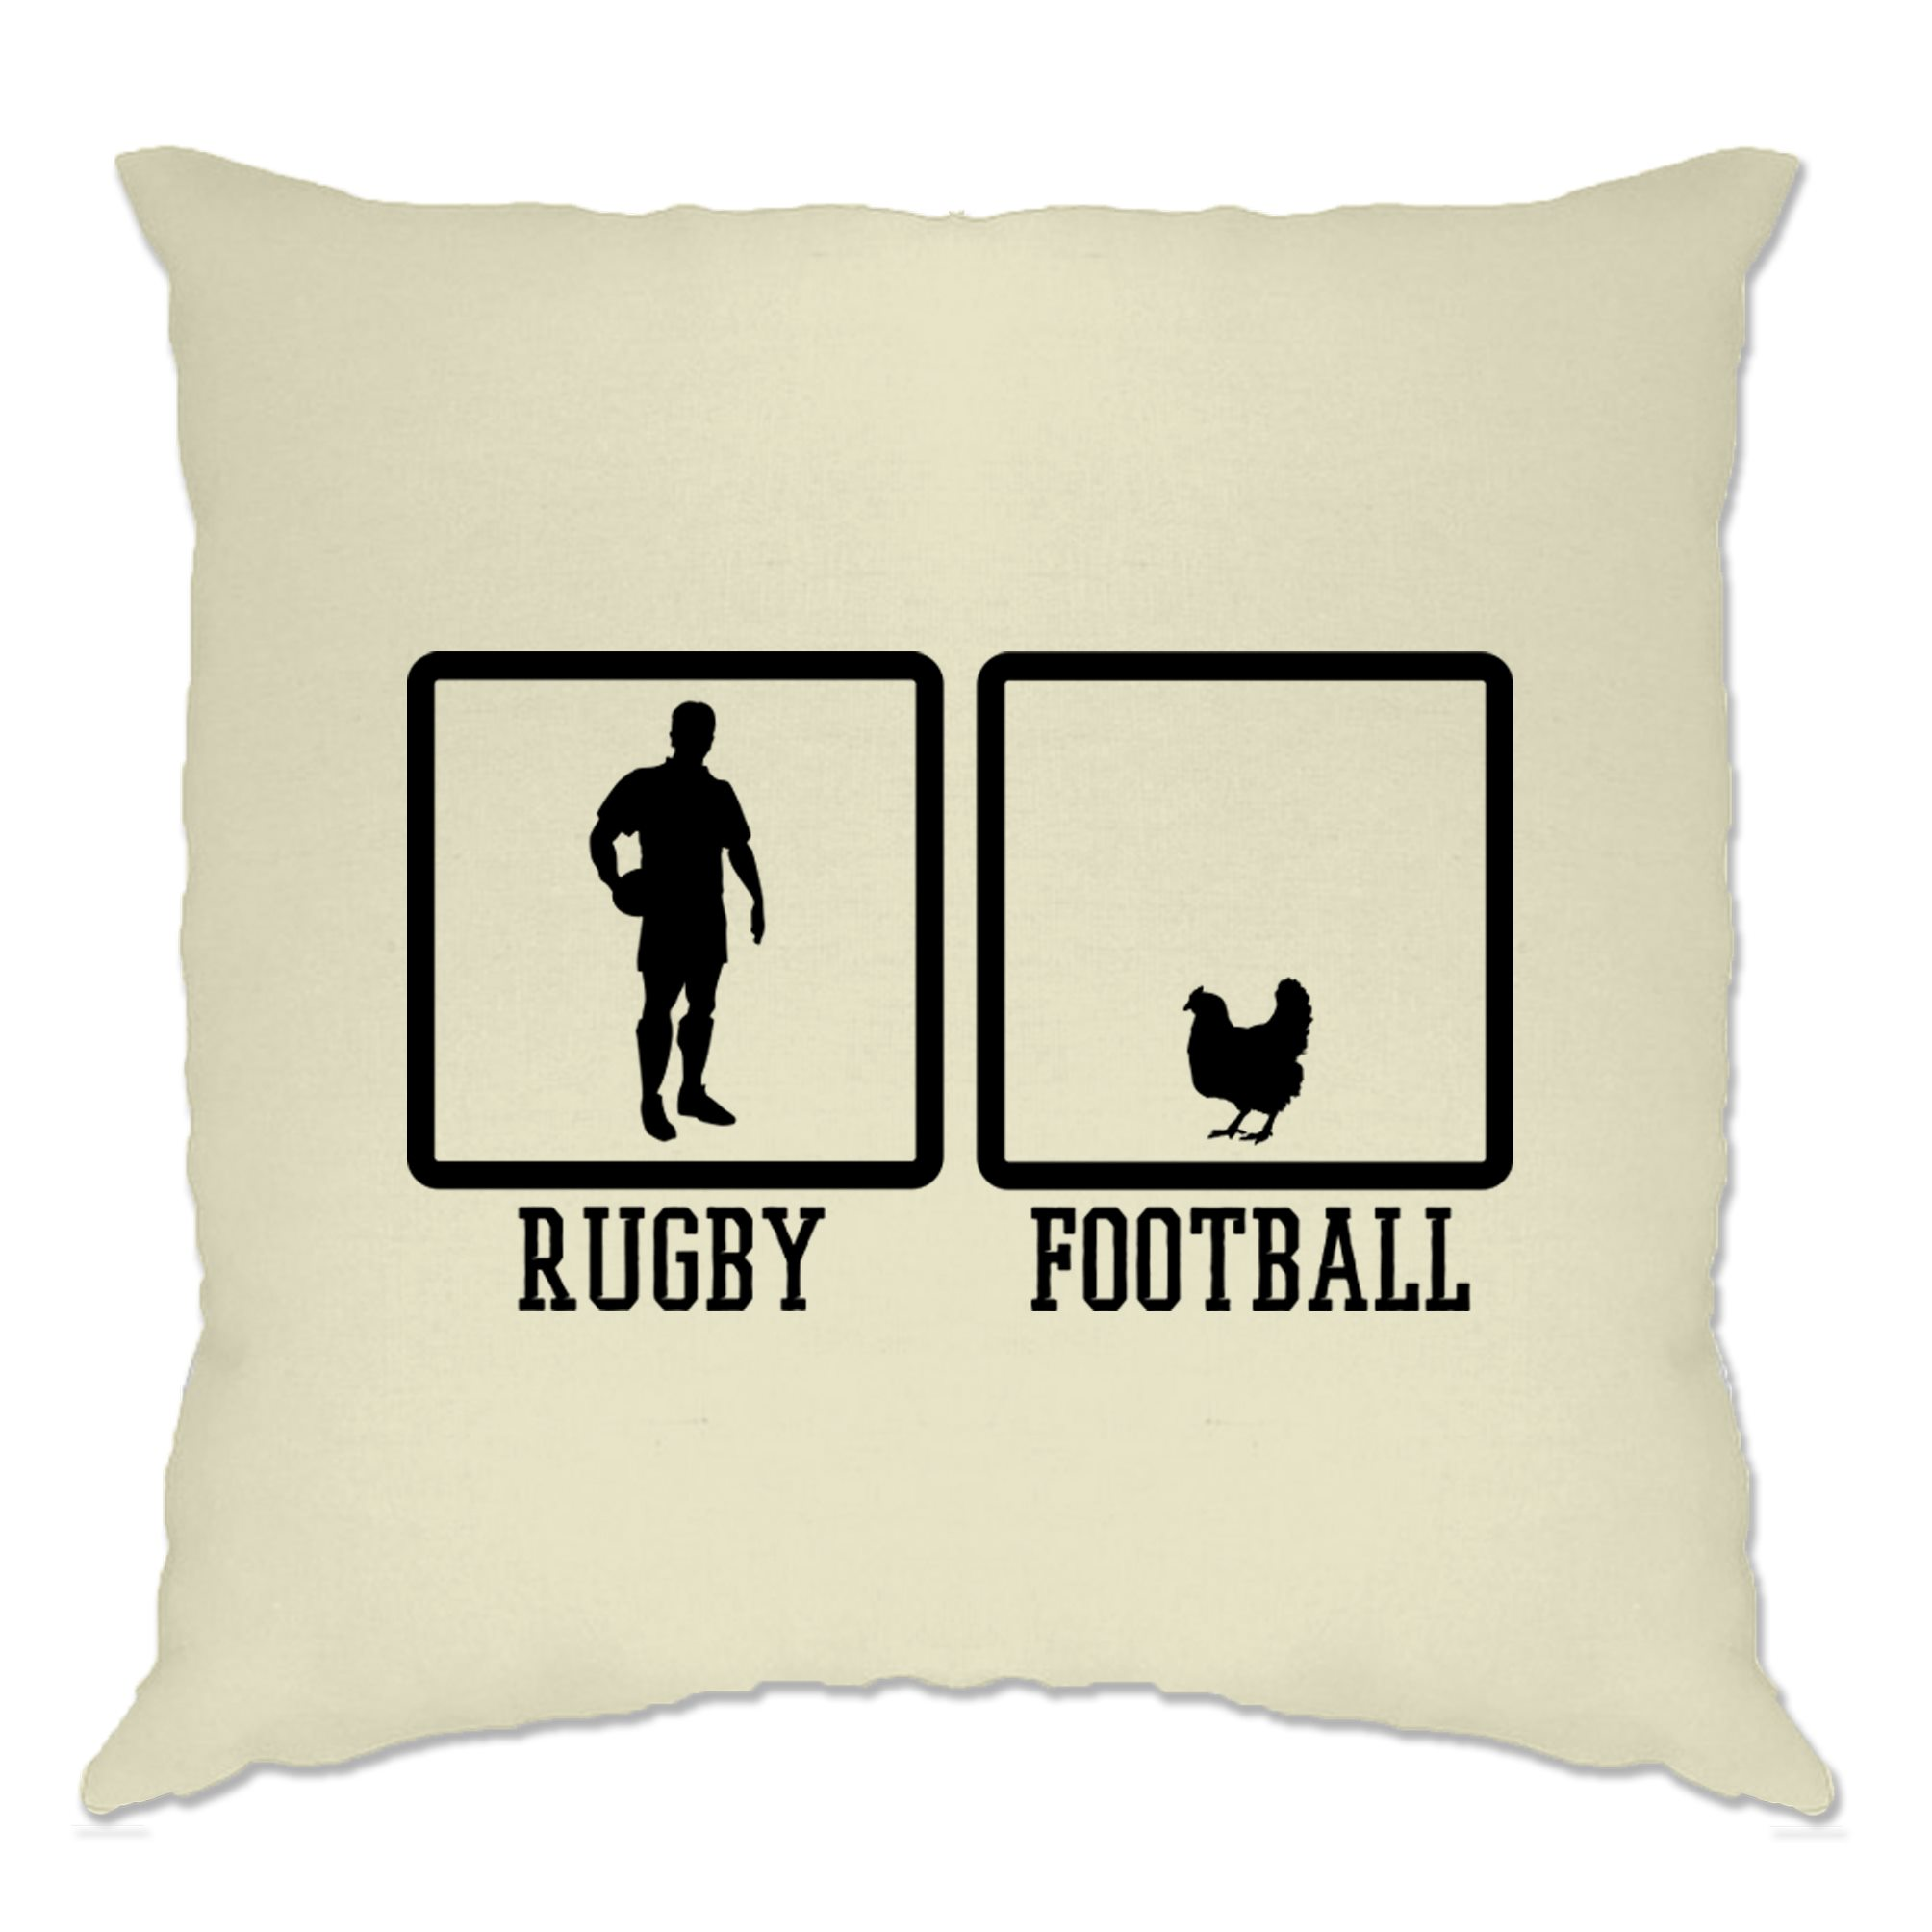 Rugby Cushion Cover Rugby VS Football... Chicken Sports